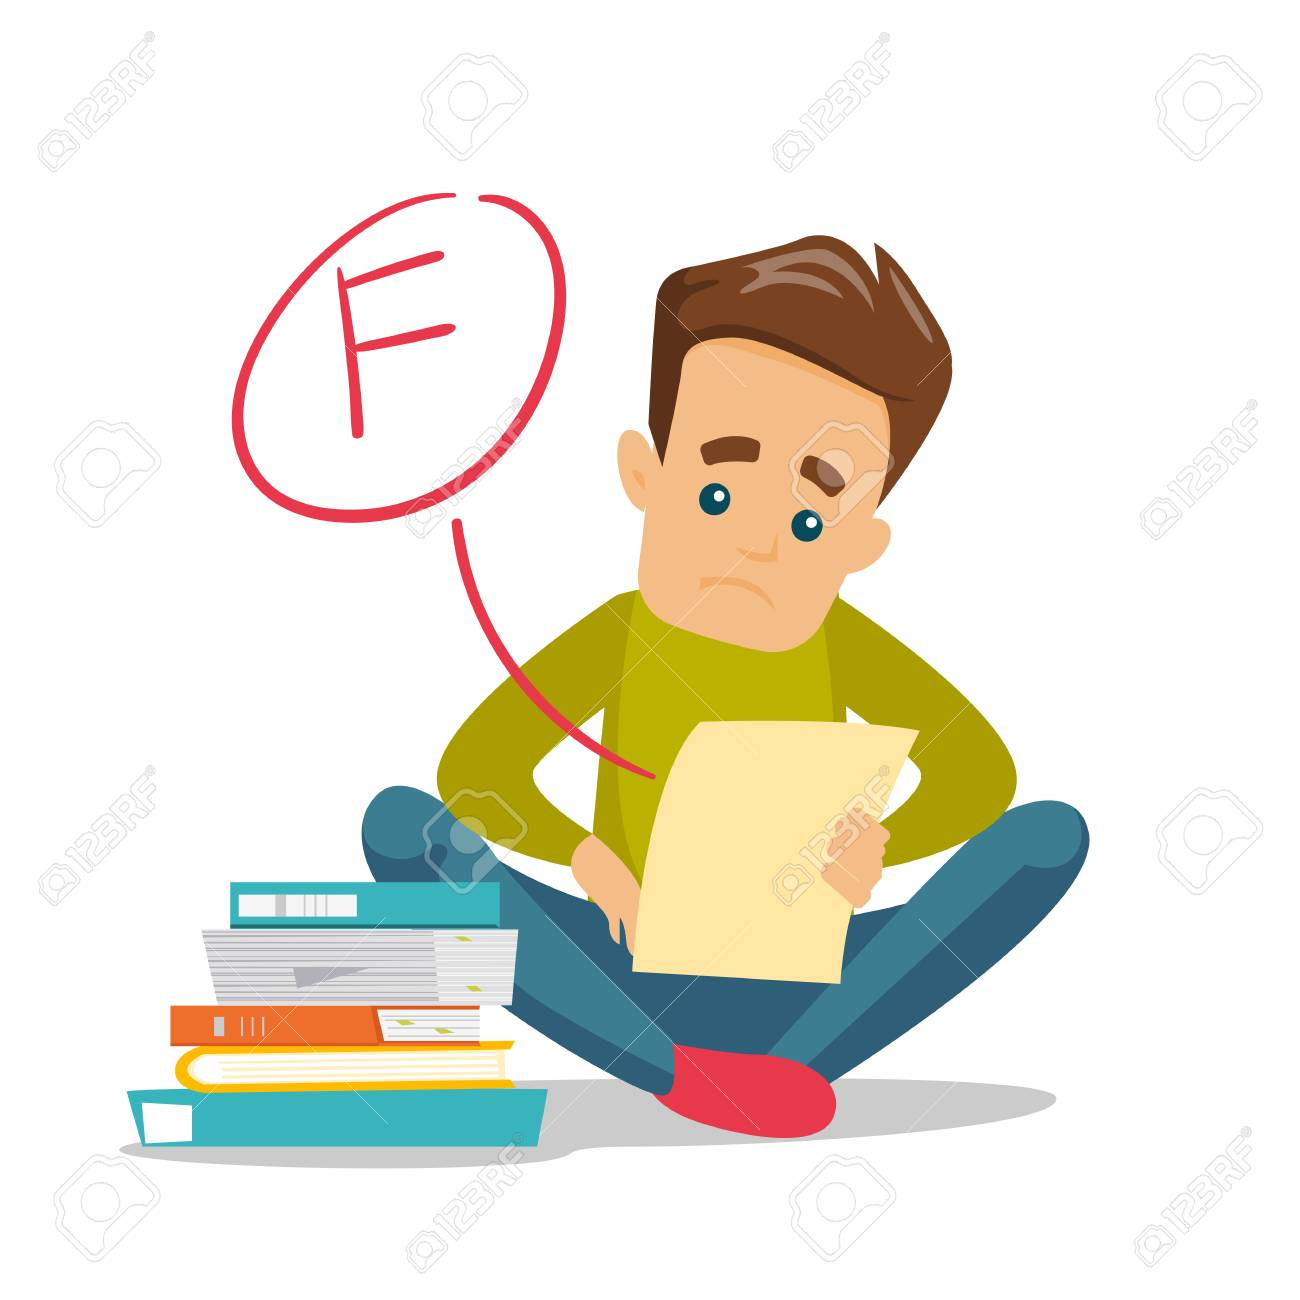 Unhappy caucasian white student disappointed by test with F grade. Sad student looking at the test paper with bad mark. Education concept. Vector cartoon illustration isolated on white background. - 97555795